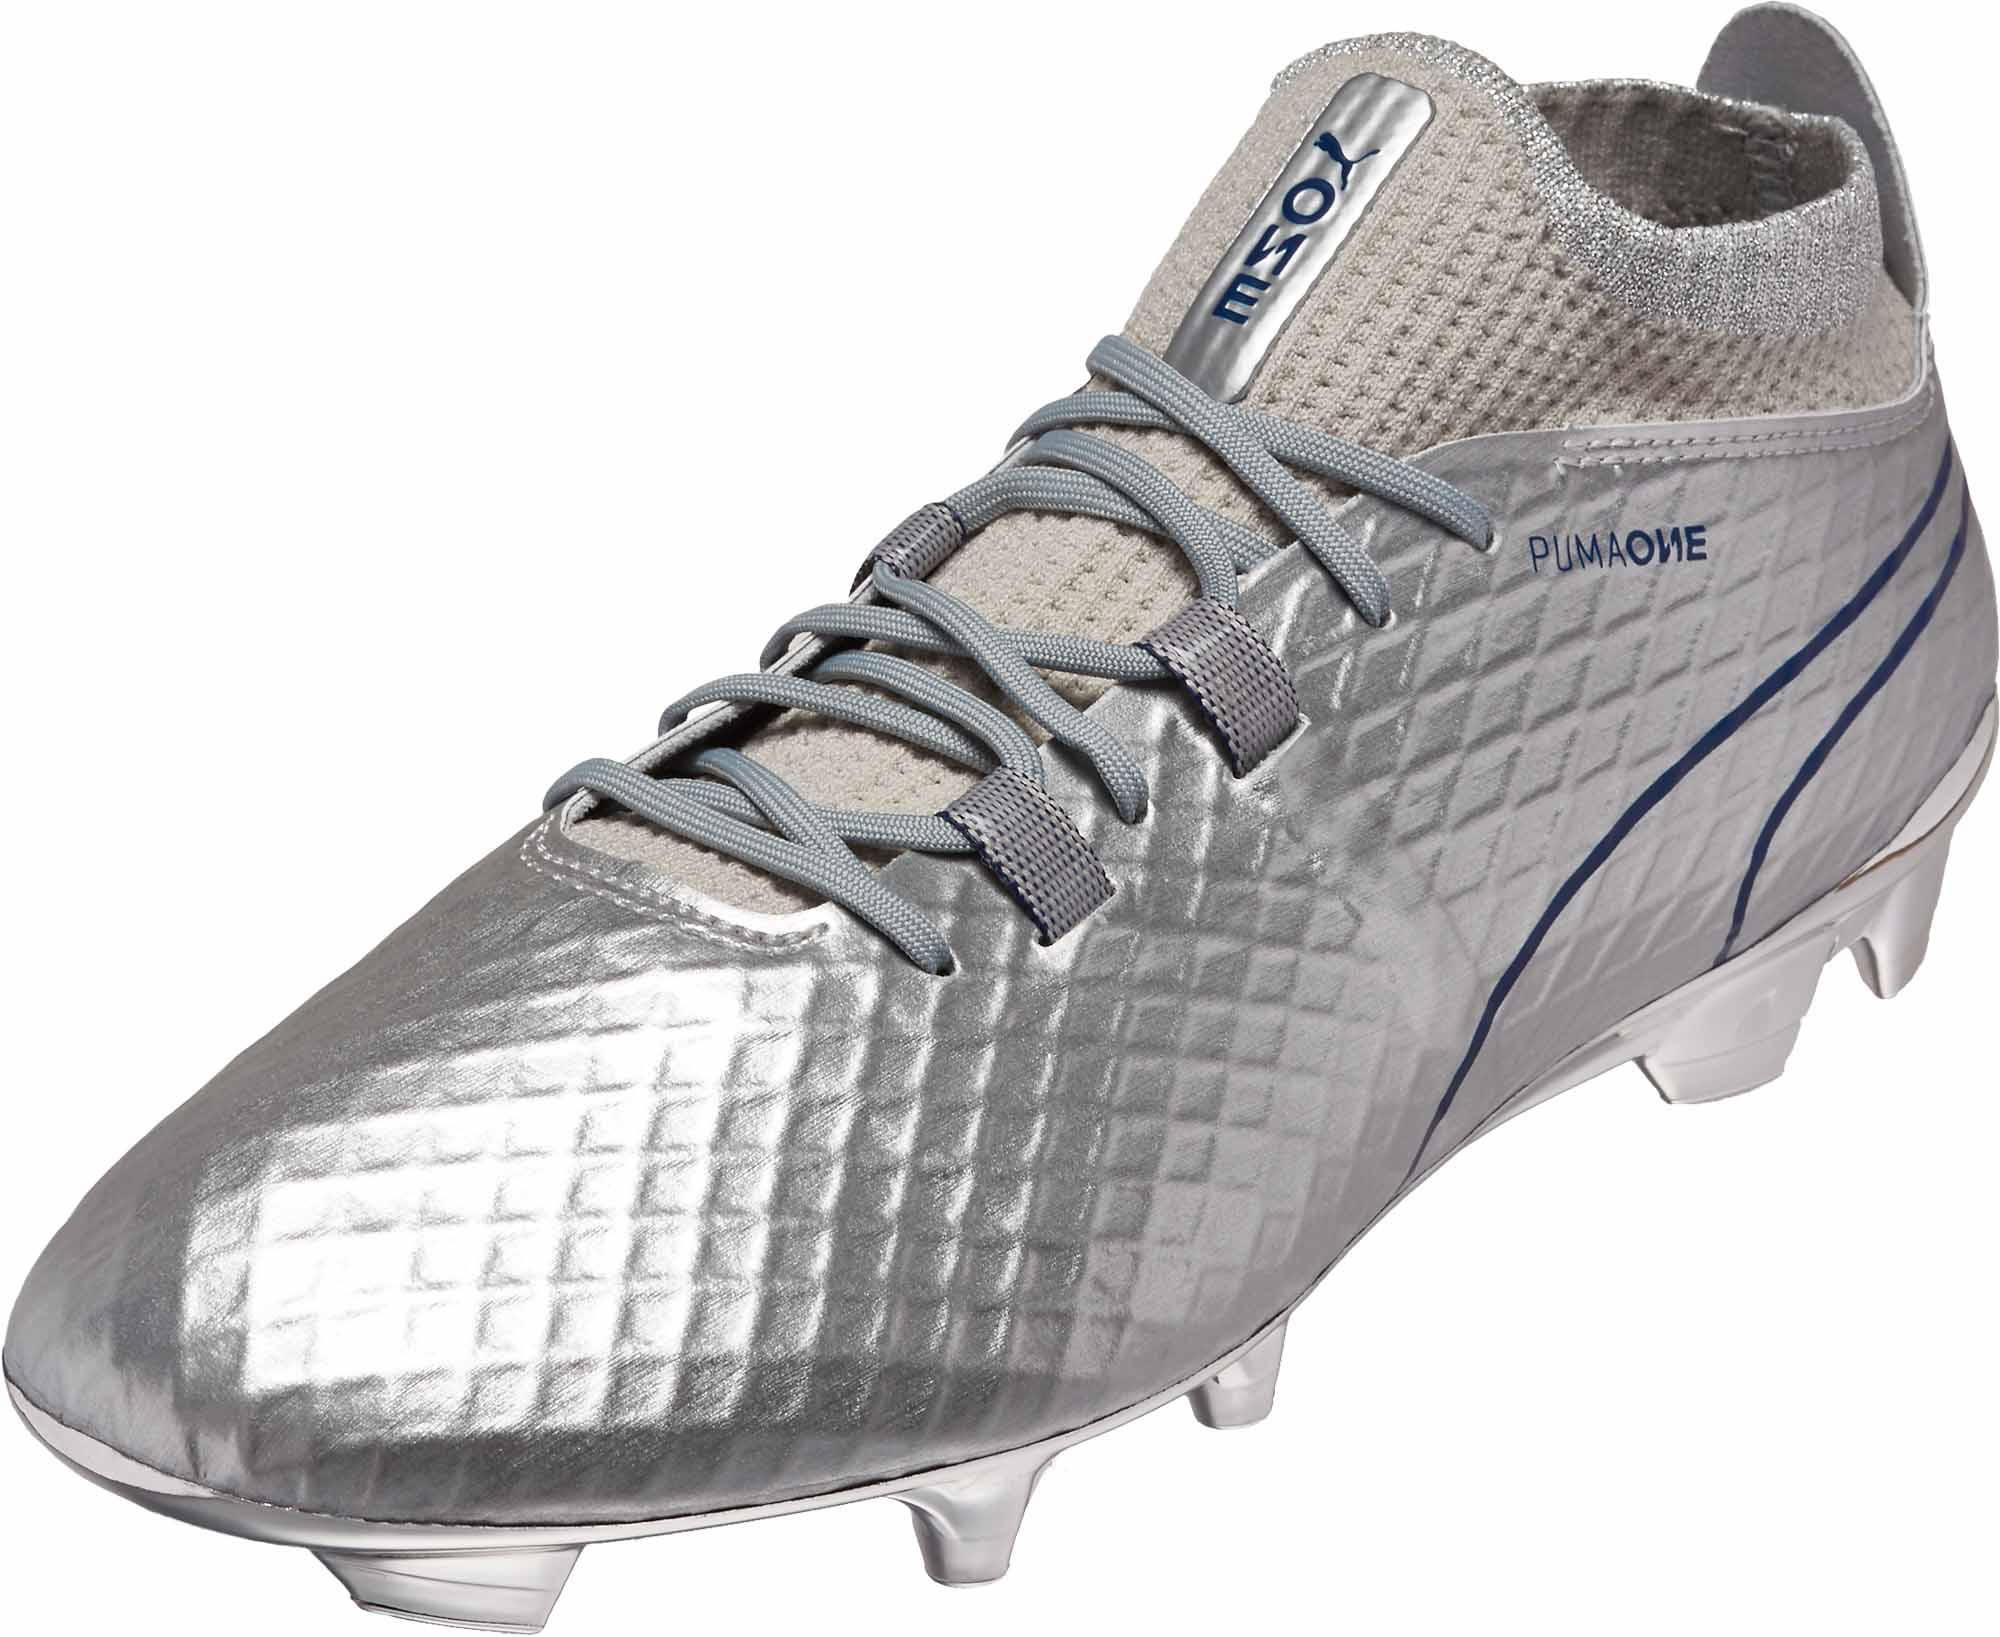 PUMA One Chrome FG – Silver Blue Depths